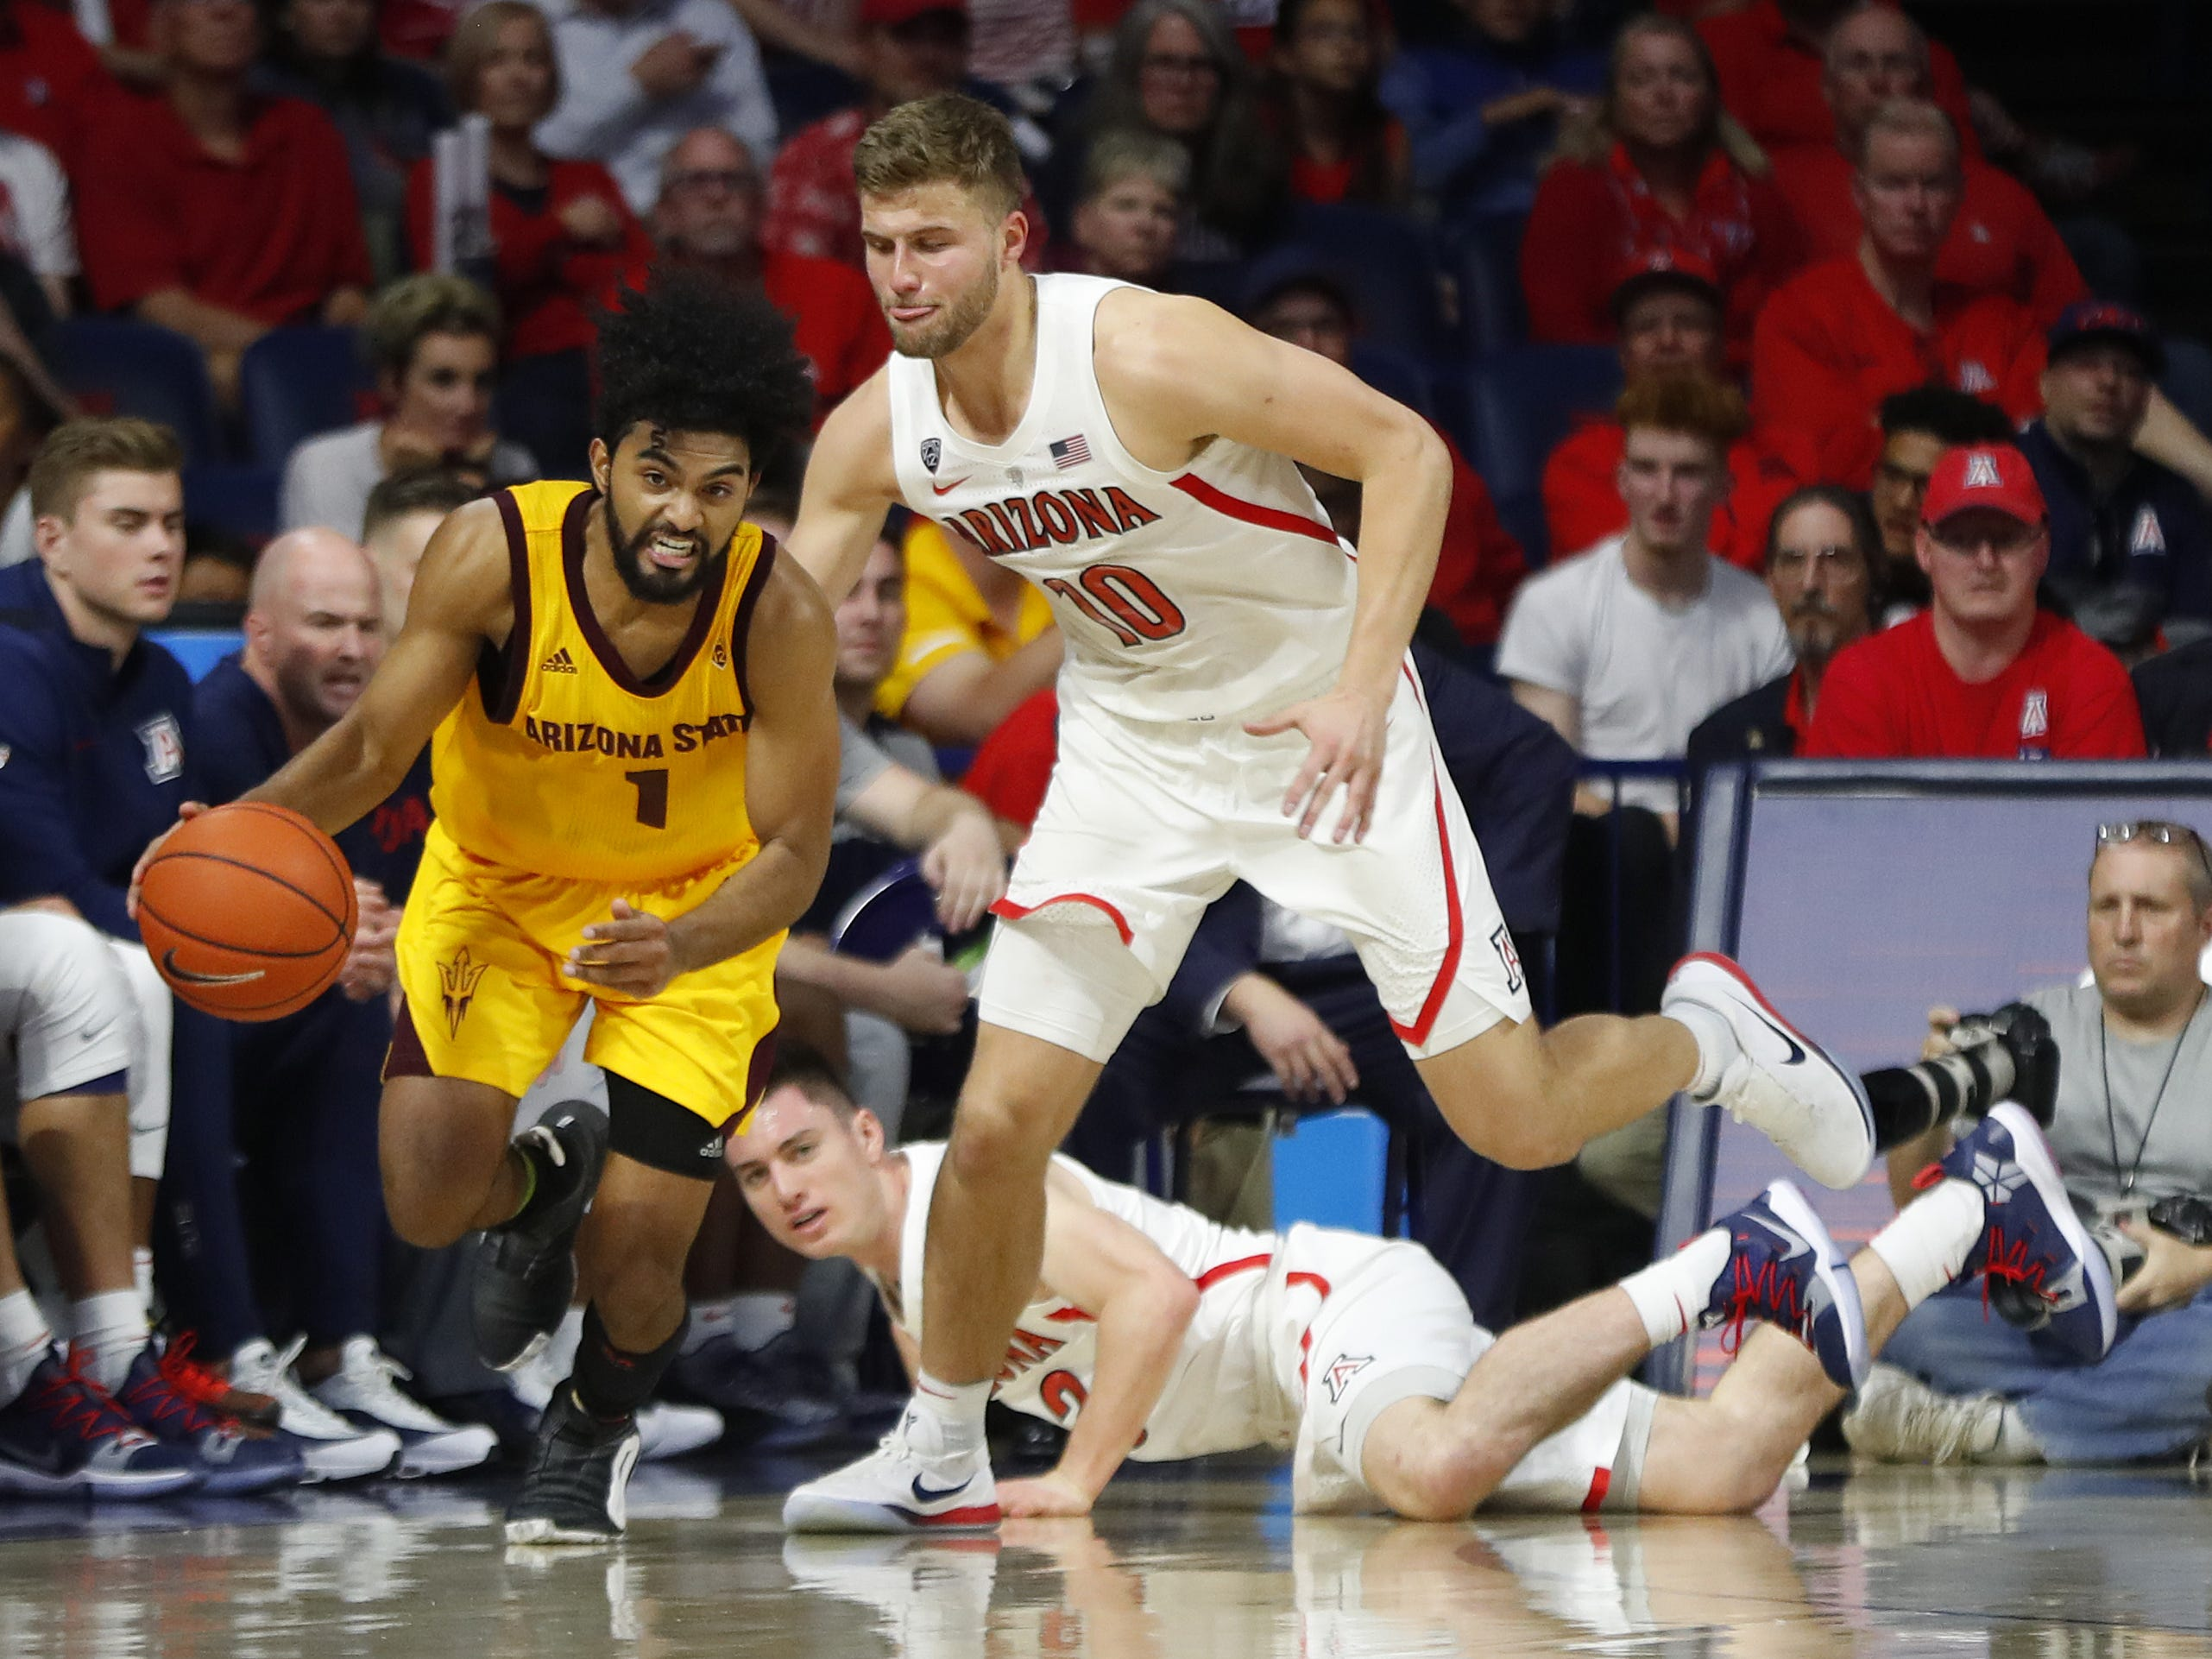 ASU's Remy Martin (1) dribbles the ball up the court away from Arizona's Ryan Luther (10) during the second half at the McKale Memorial Center in Tucson, Ariz. on March 9, 2019.